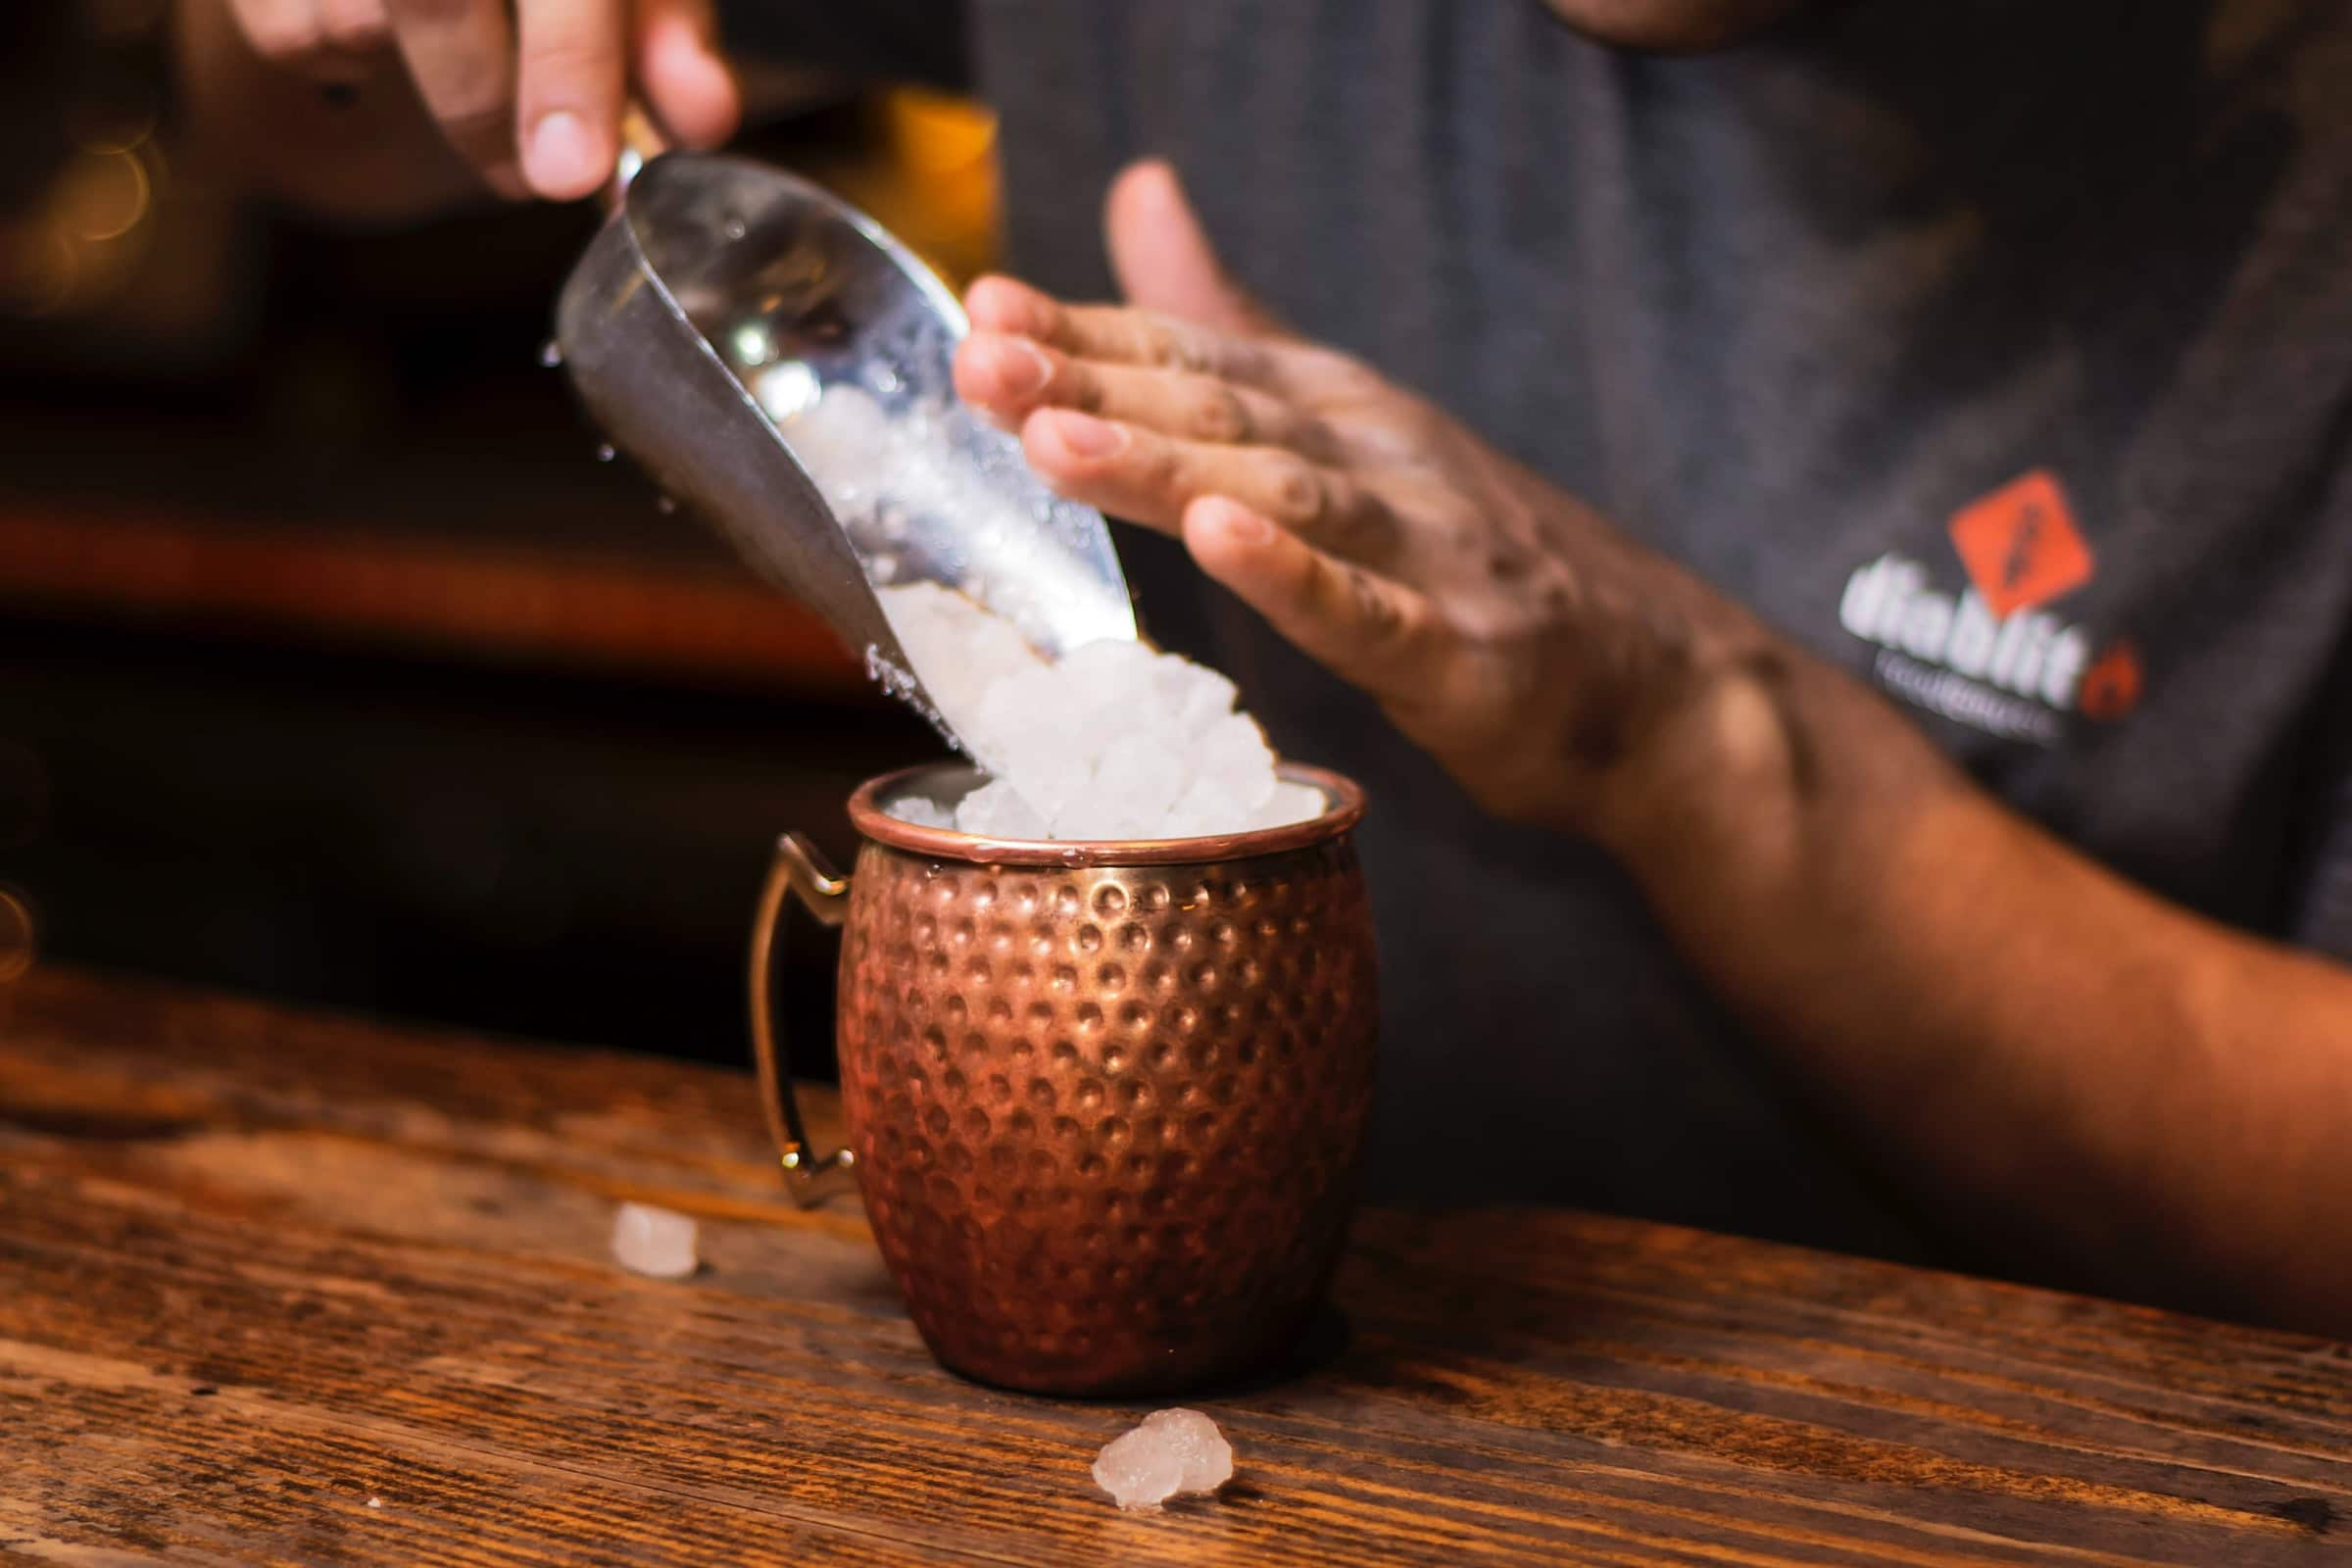 A bartender pours ice into a copper cocktail mug showing how to blend cocktails with ice